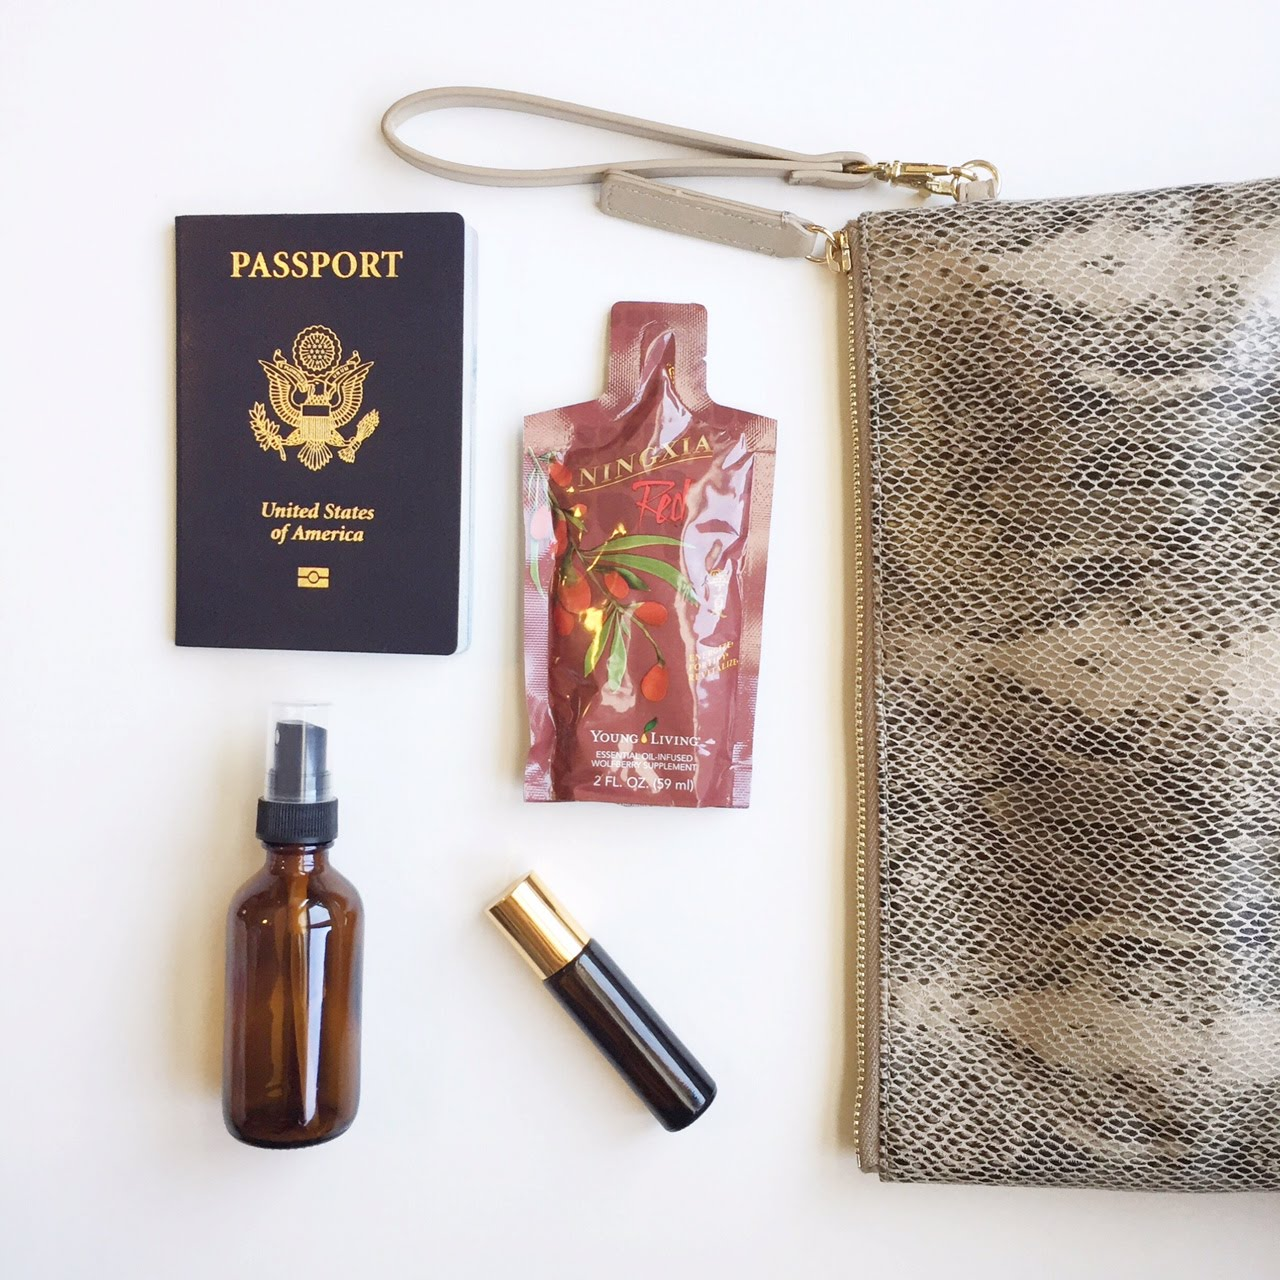 Sacred Mountain Bar Soap is included in our Travel Collection!